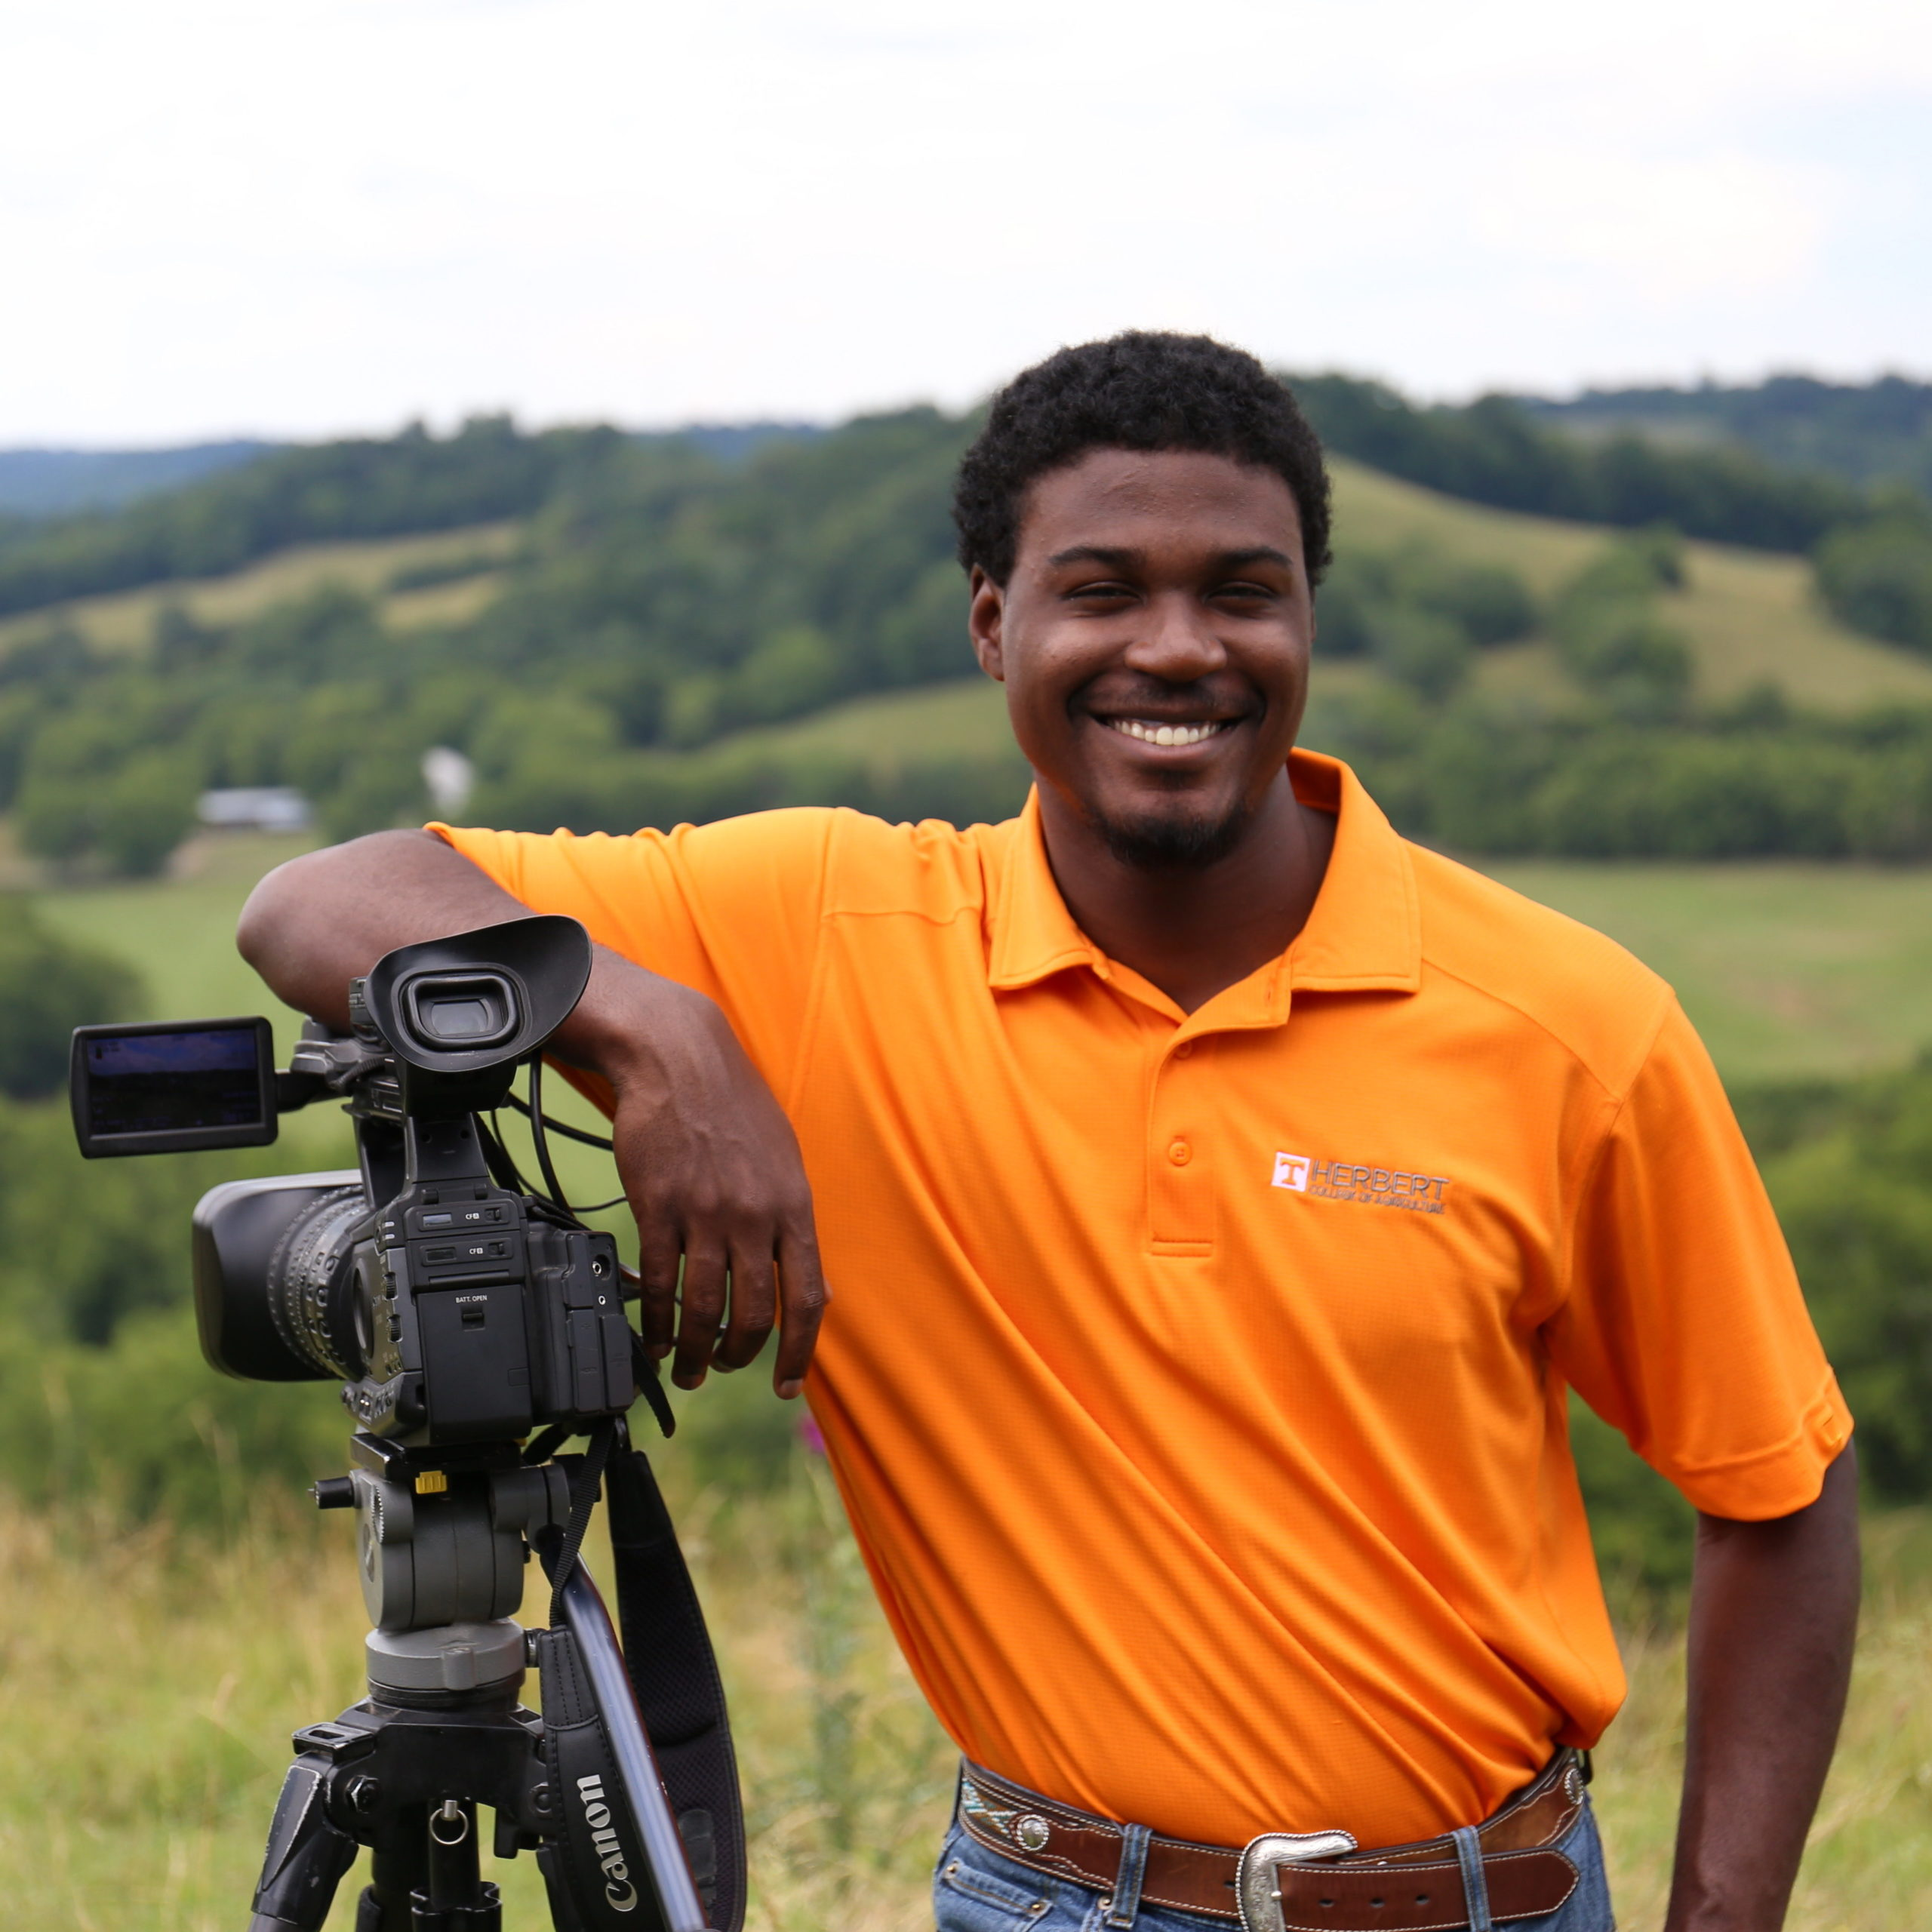 African American male student smiles and leans on a camera mounted on a tripod with the Tennessee hills in the background